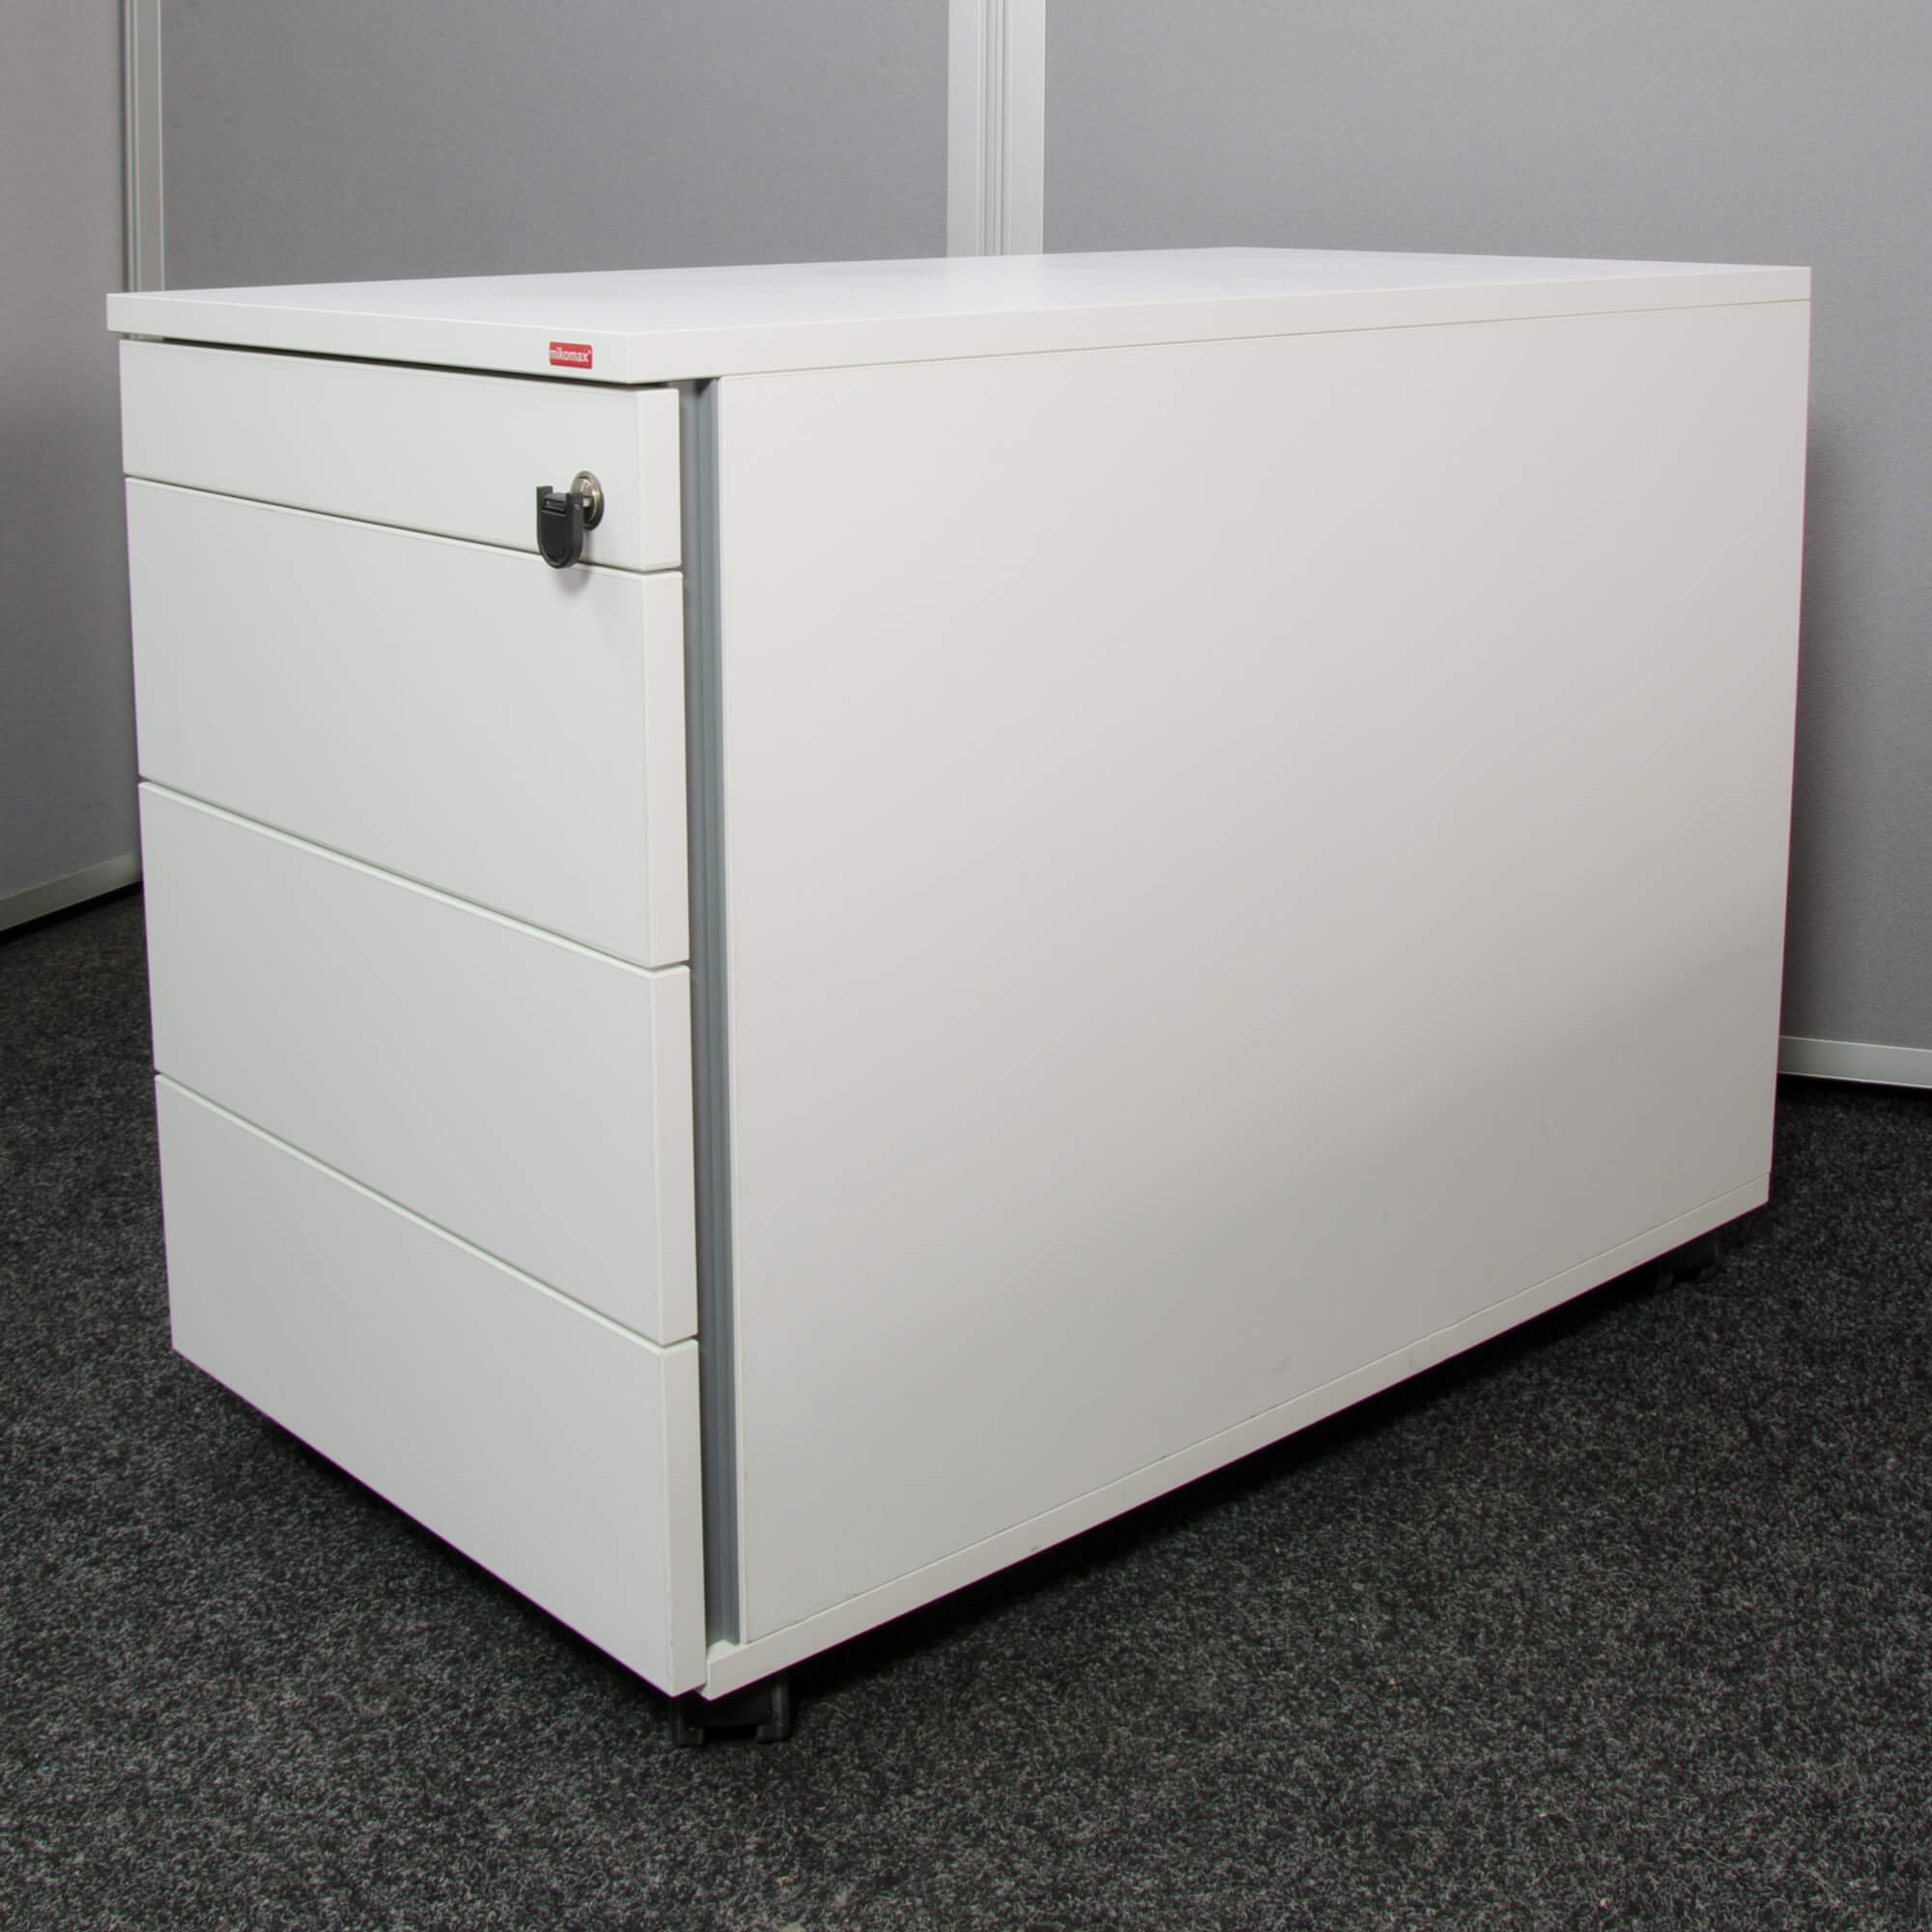 Mikomax rollcontainer 800 mm tief in wei rollschrank b ro for Buro rollcontainer